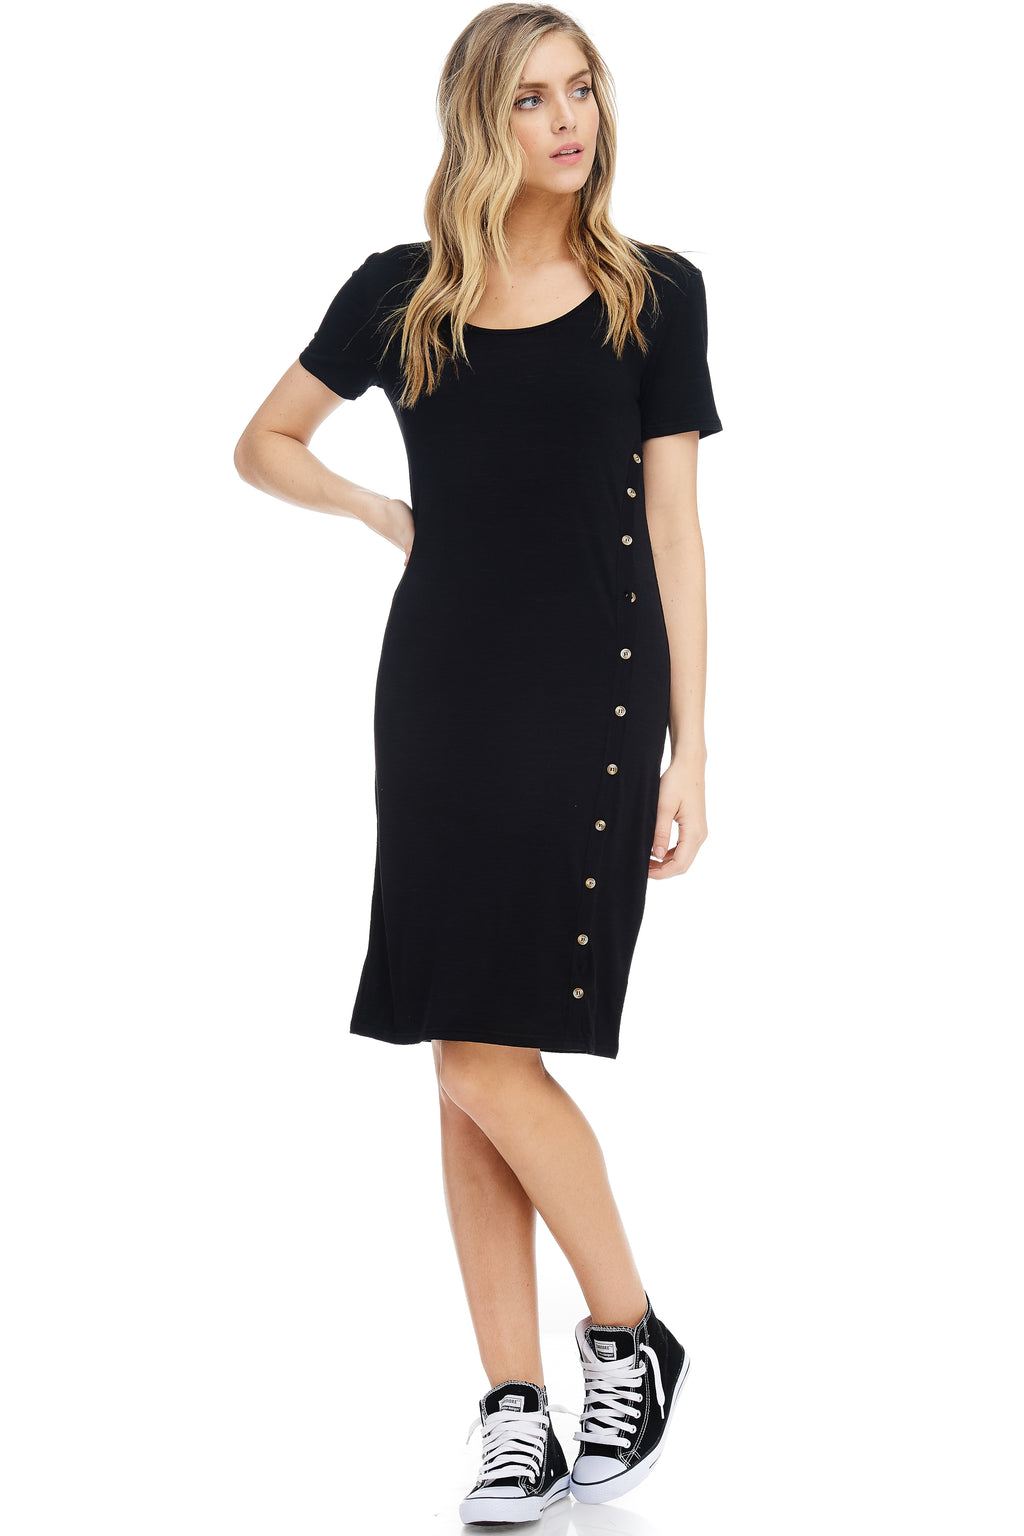 *Pre-Order* W18-215 Buttoned Shift Dress